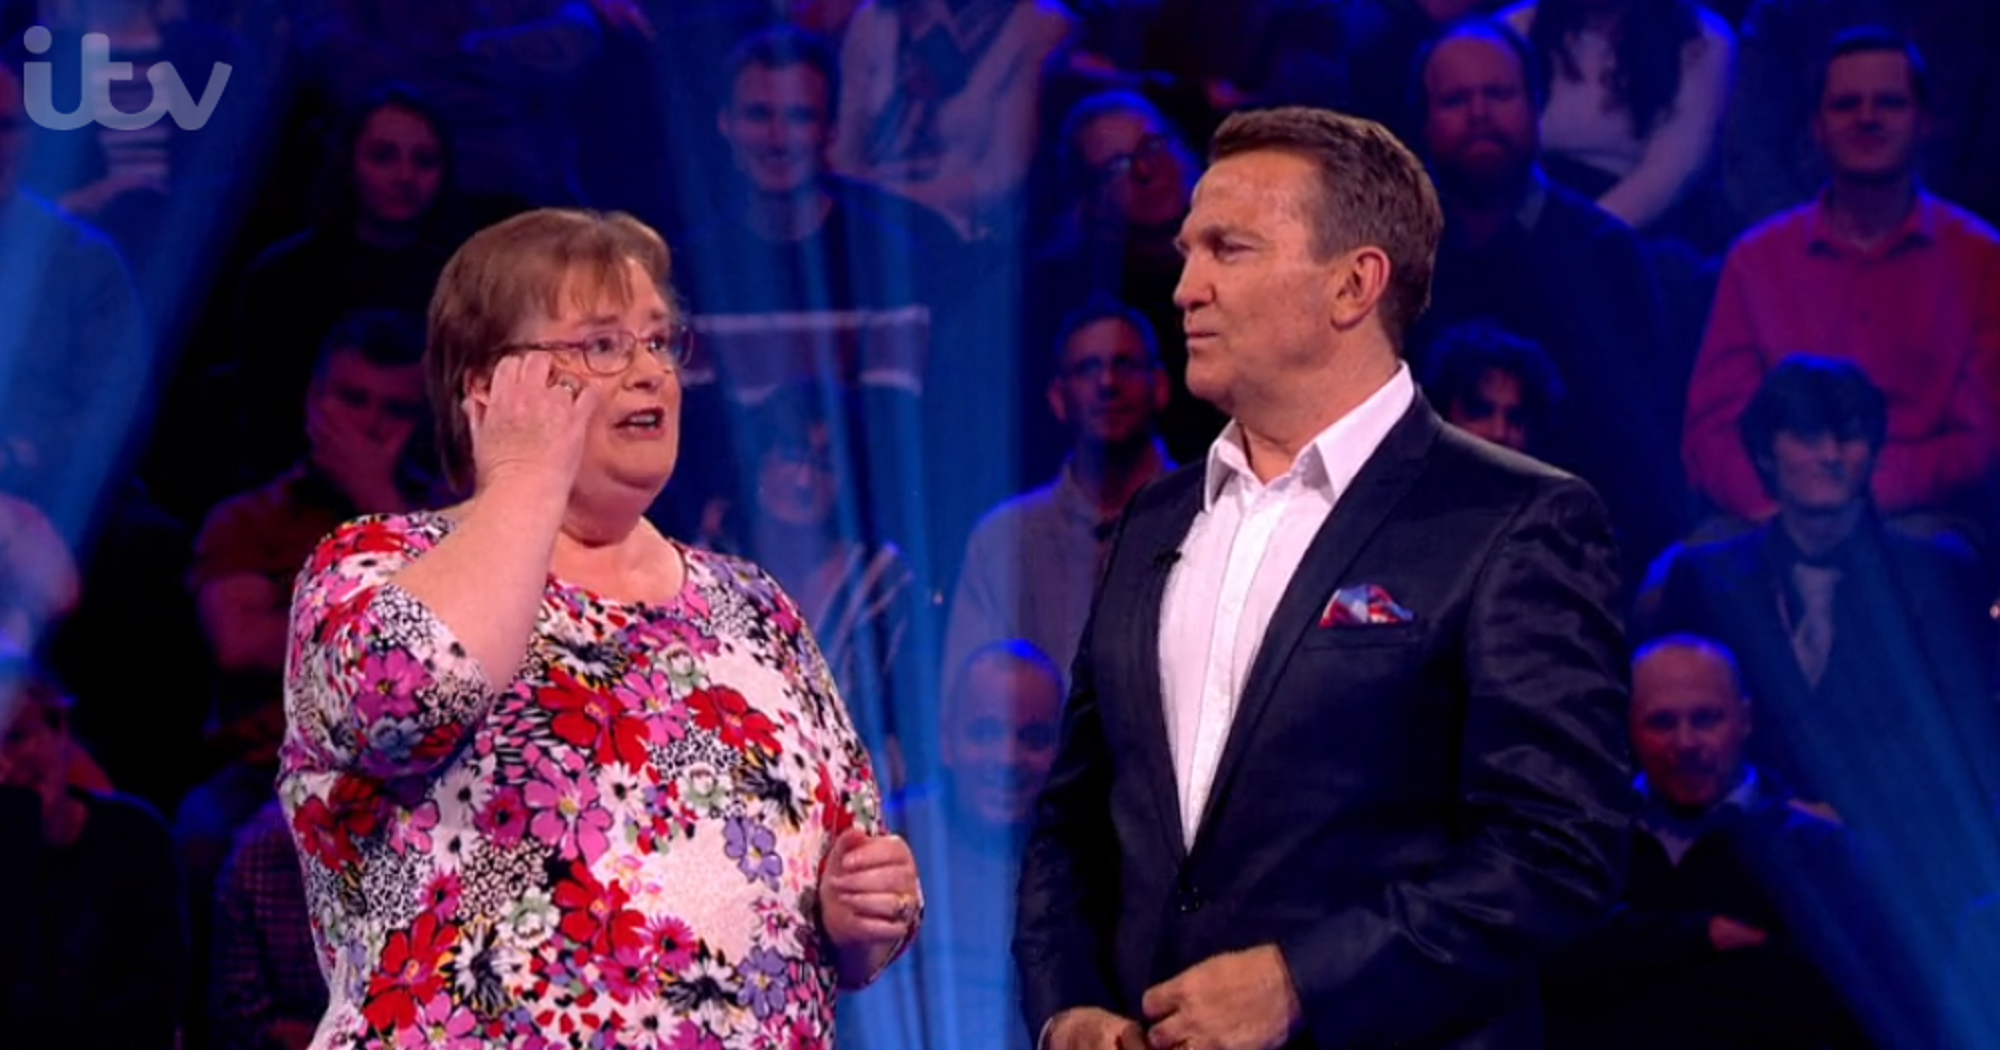 Beat The Chasers viewers in tears after contestant Val loses out on £10k win by one second